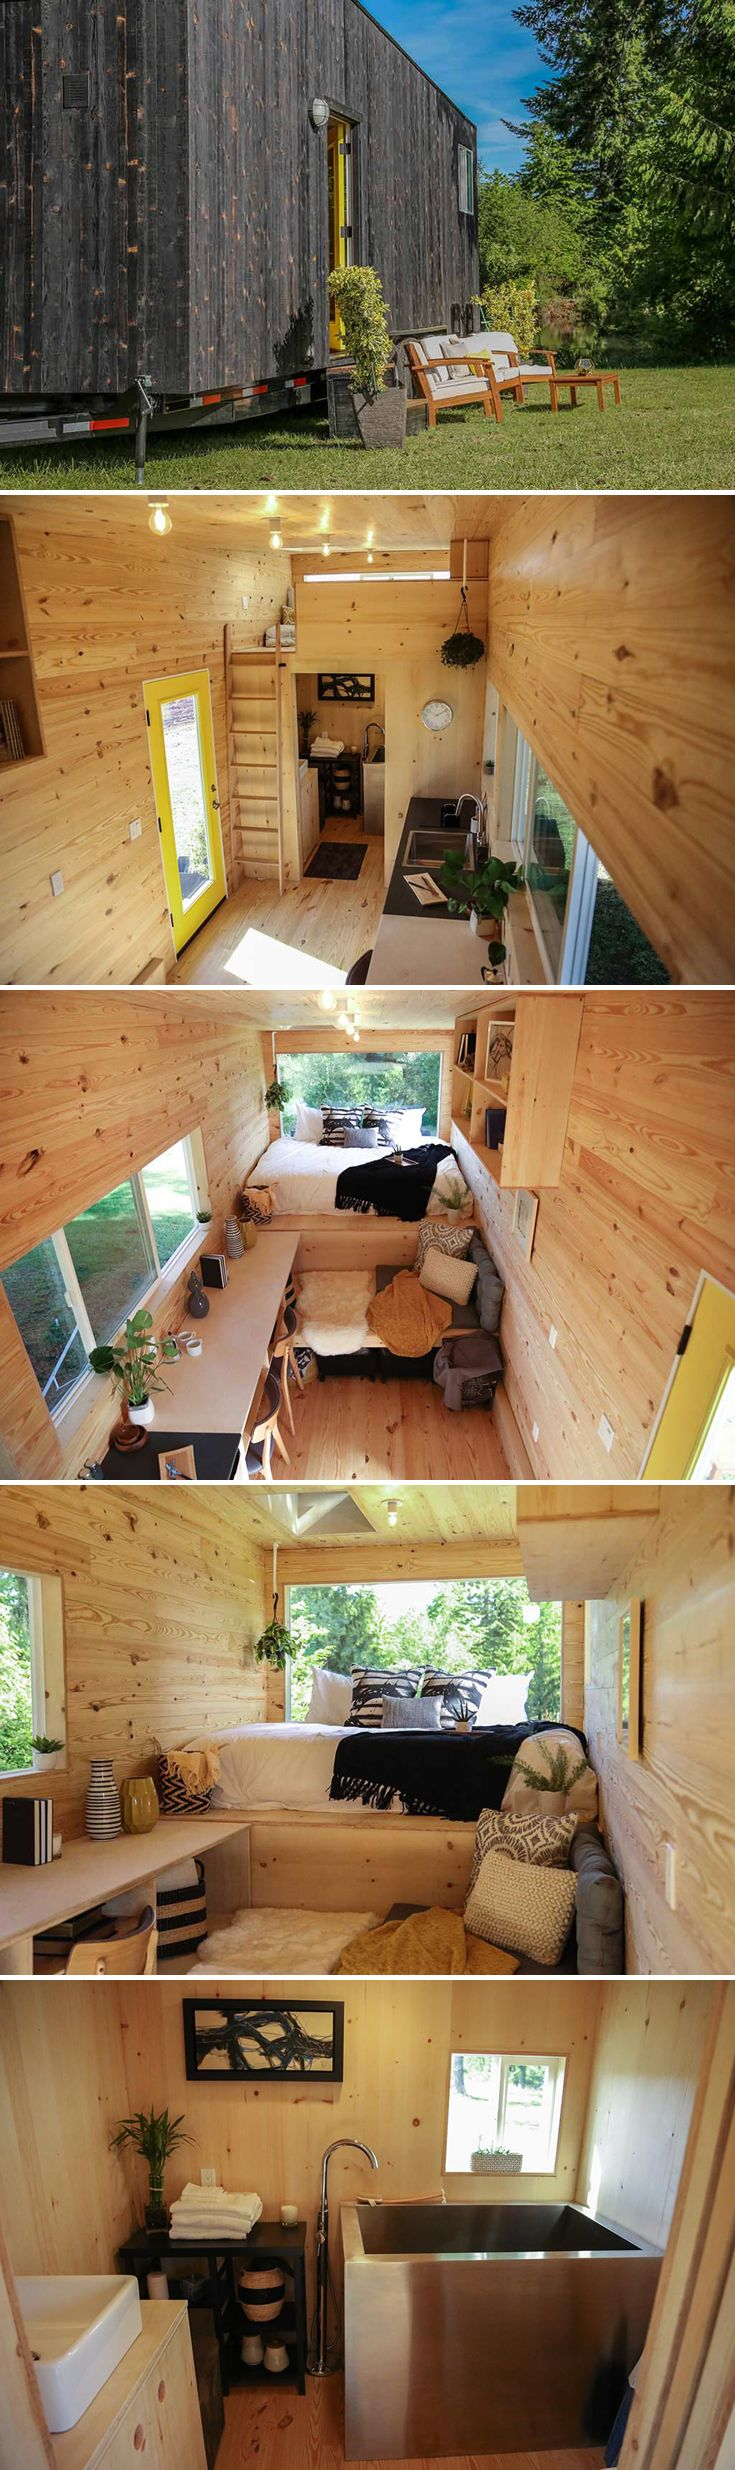 "The ""Tiny Home on the Coast"" features shou sugi ban siding, a main floor bed, and a Japanese-style soaking tub. Natural wood finishes were used throughout."